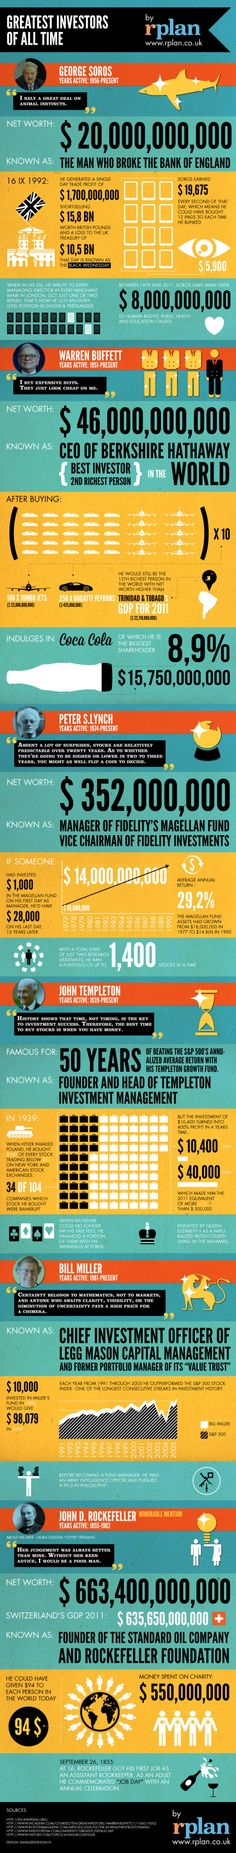 Greatest Investors of All Time[INFOGRAPHIC]